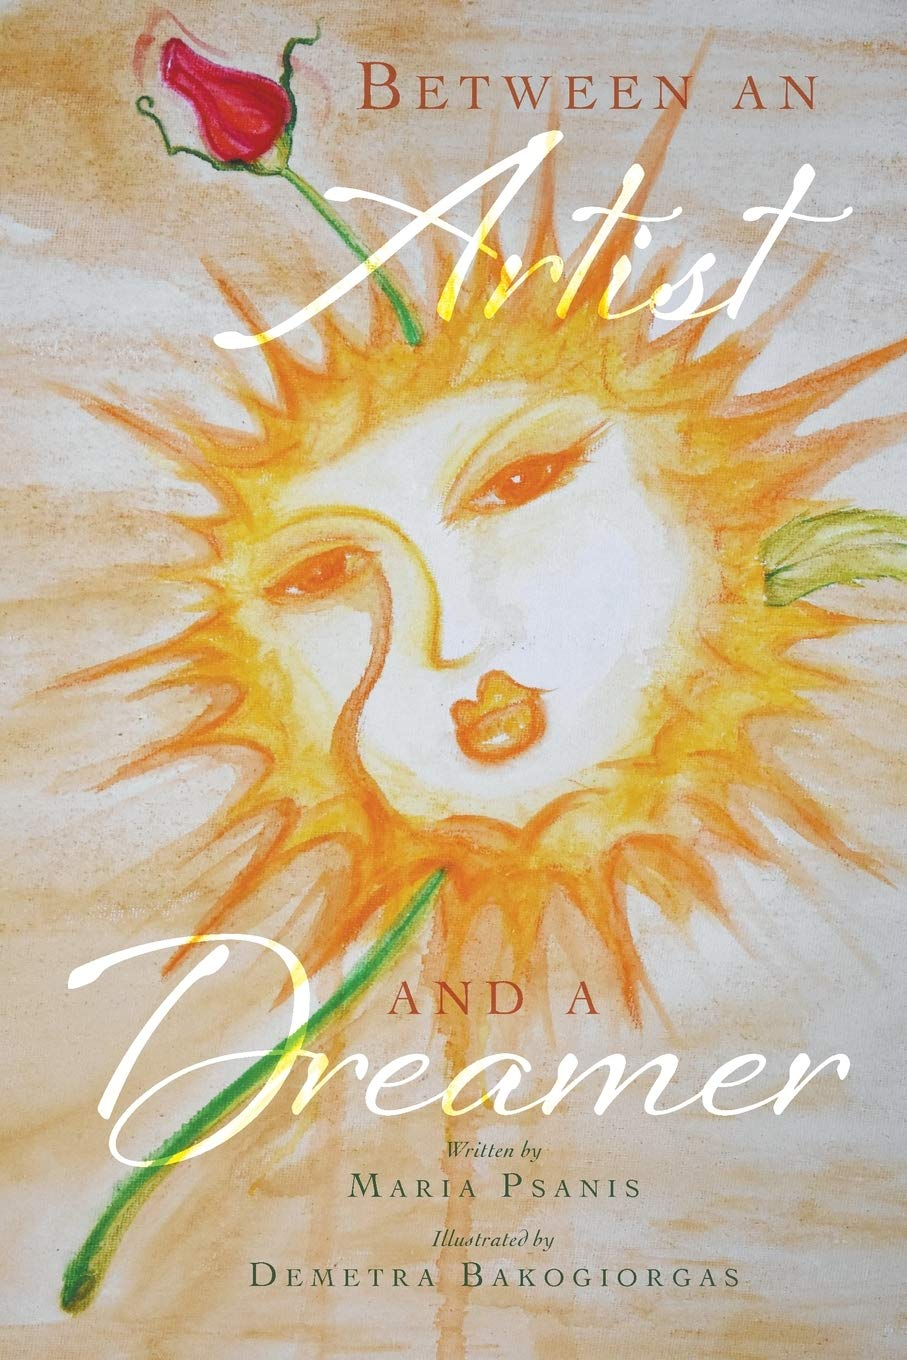 Between an Artist and a Dreamer | Mindstir Media Book Cover